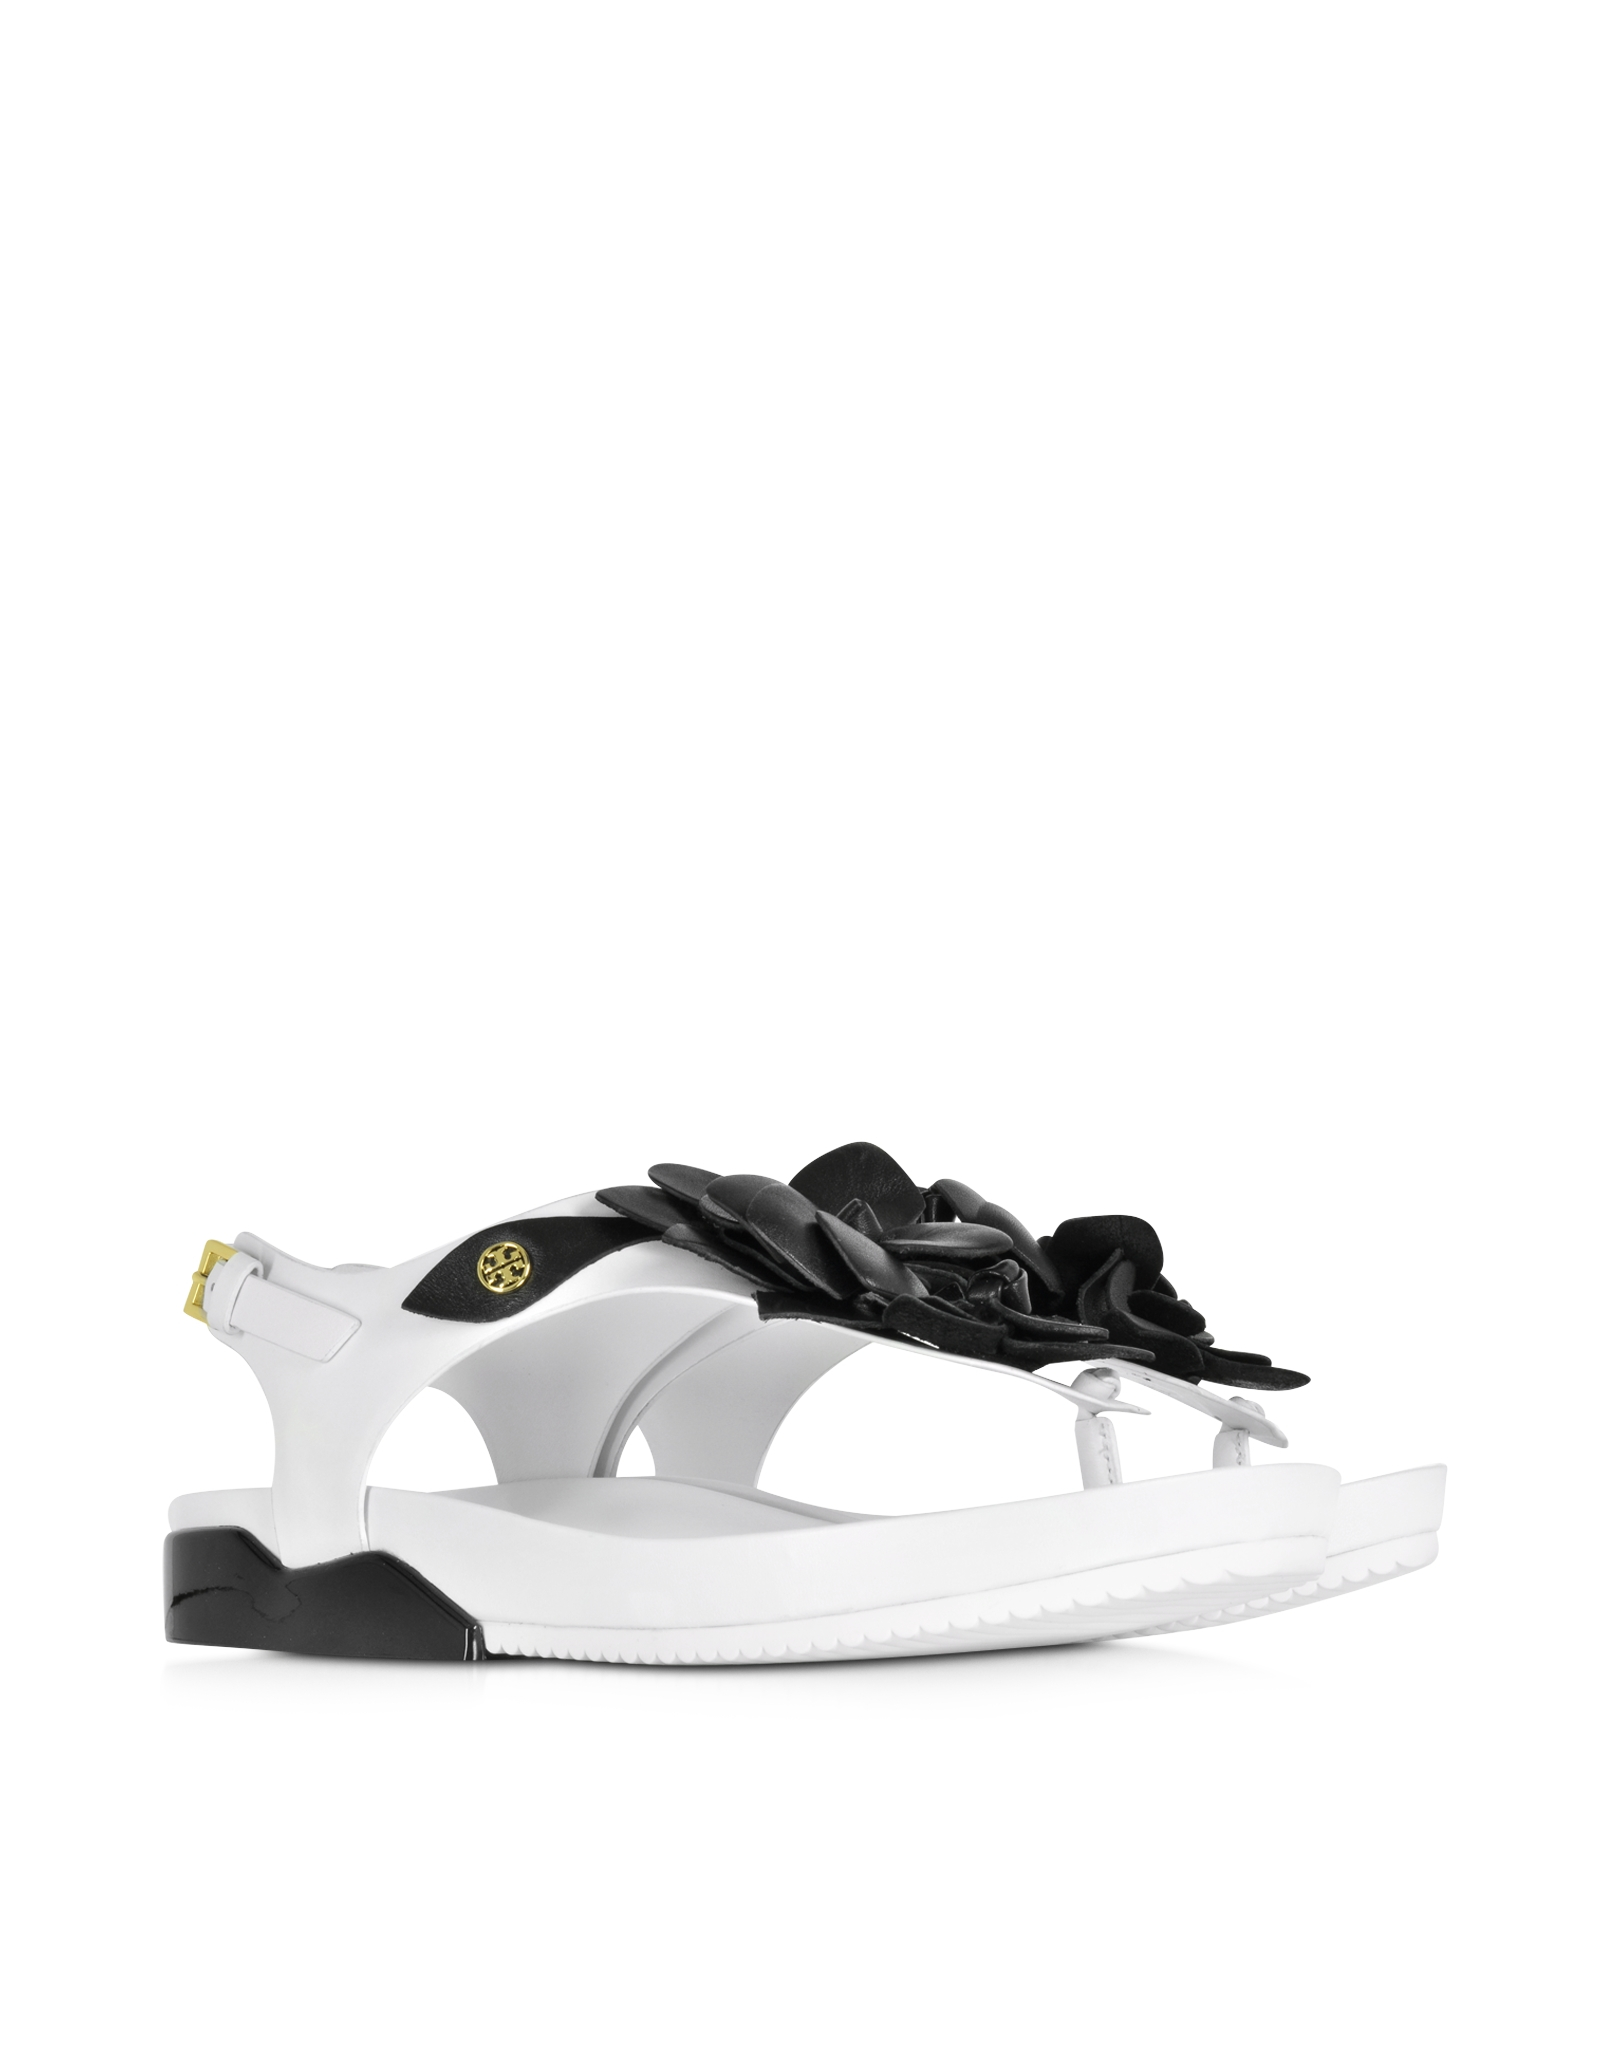 Tory Burch Blossom Two Tone Leather Sandal In White Lyst